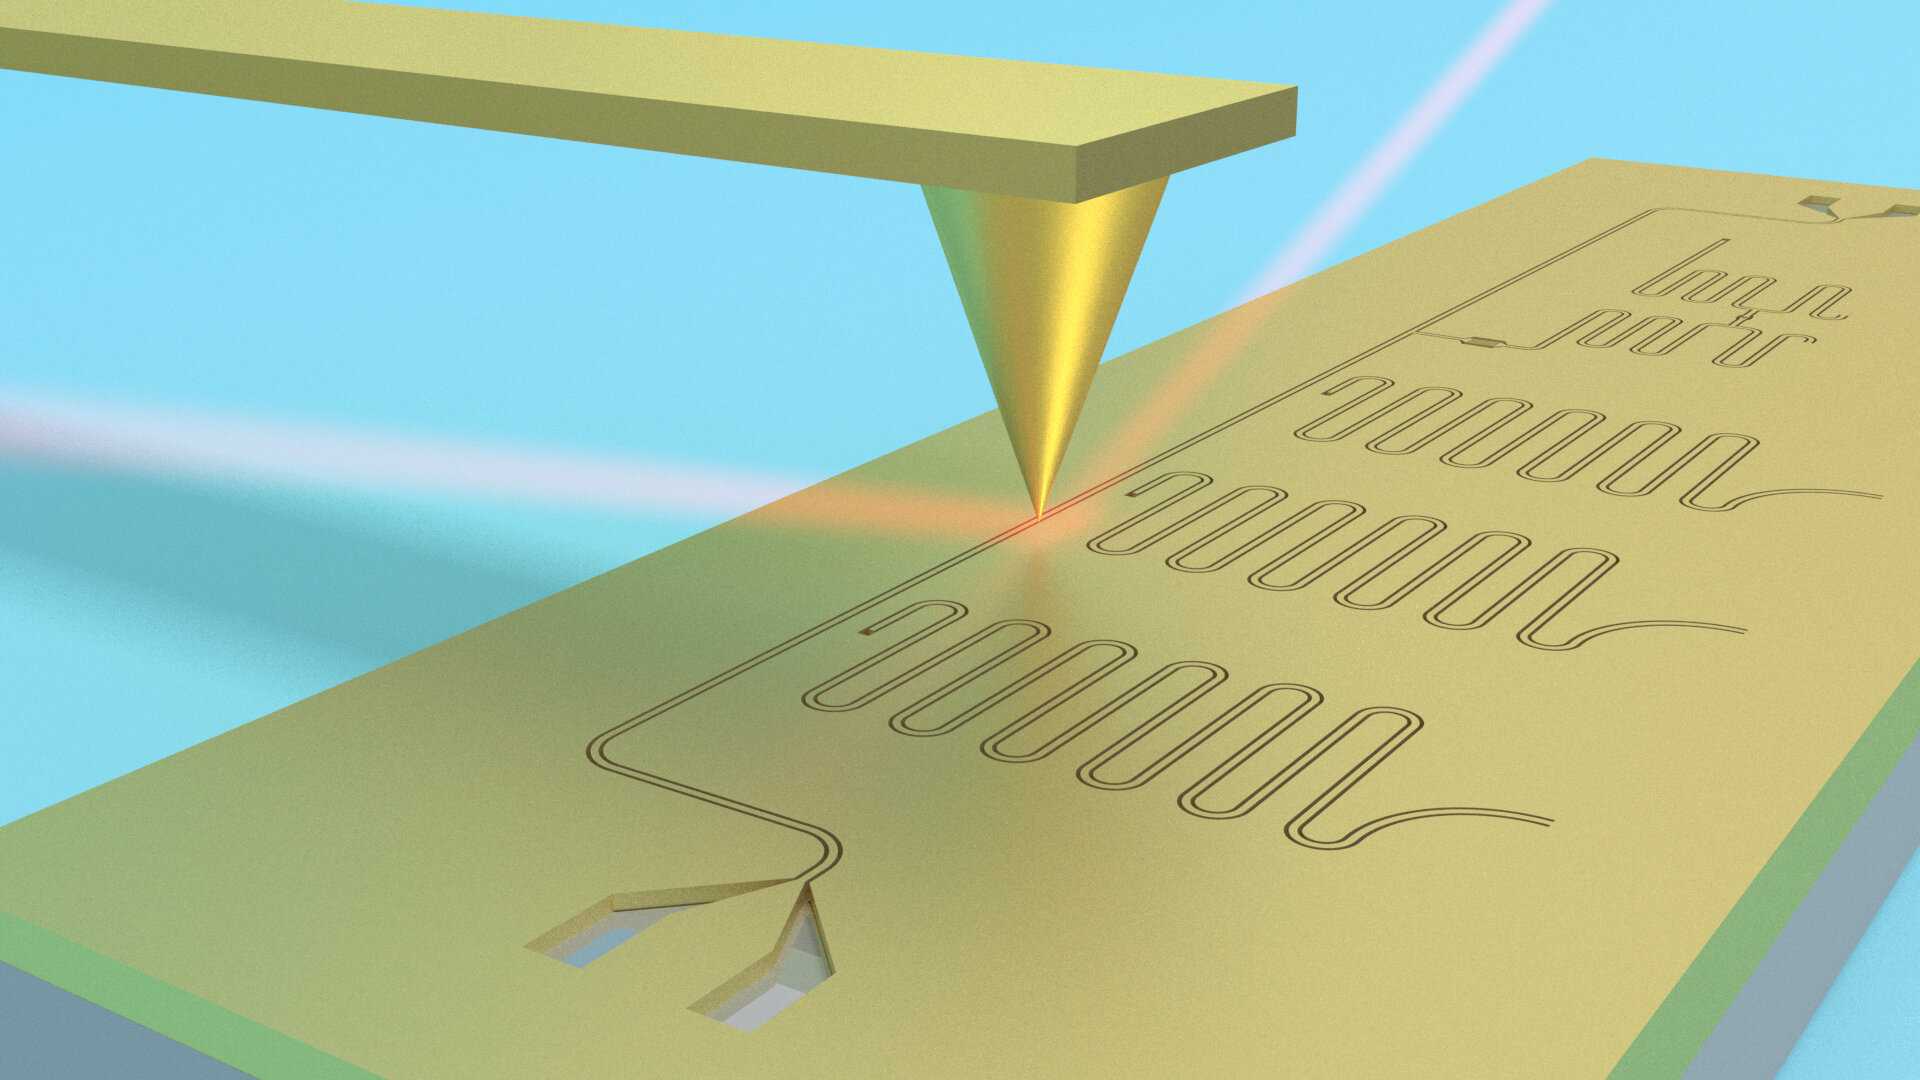 Improved fabrication technique paves way for improved quantum devices